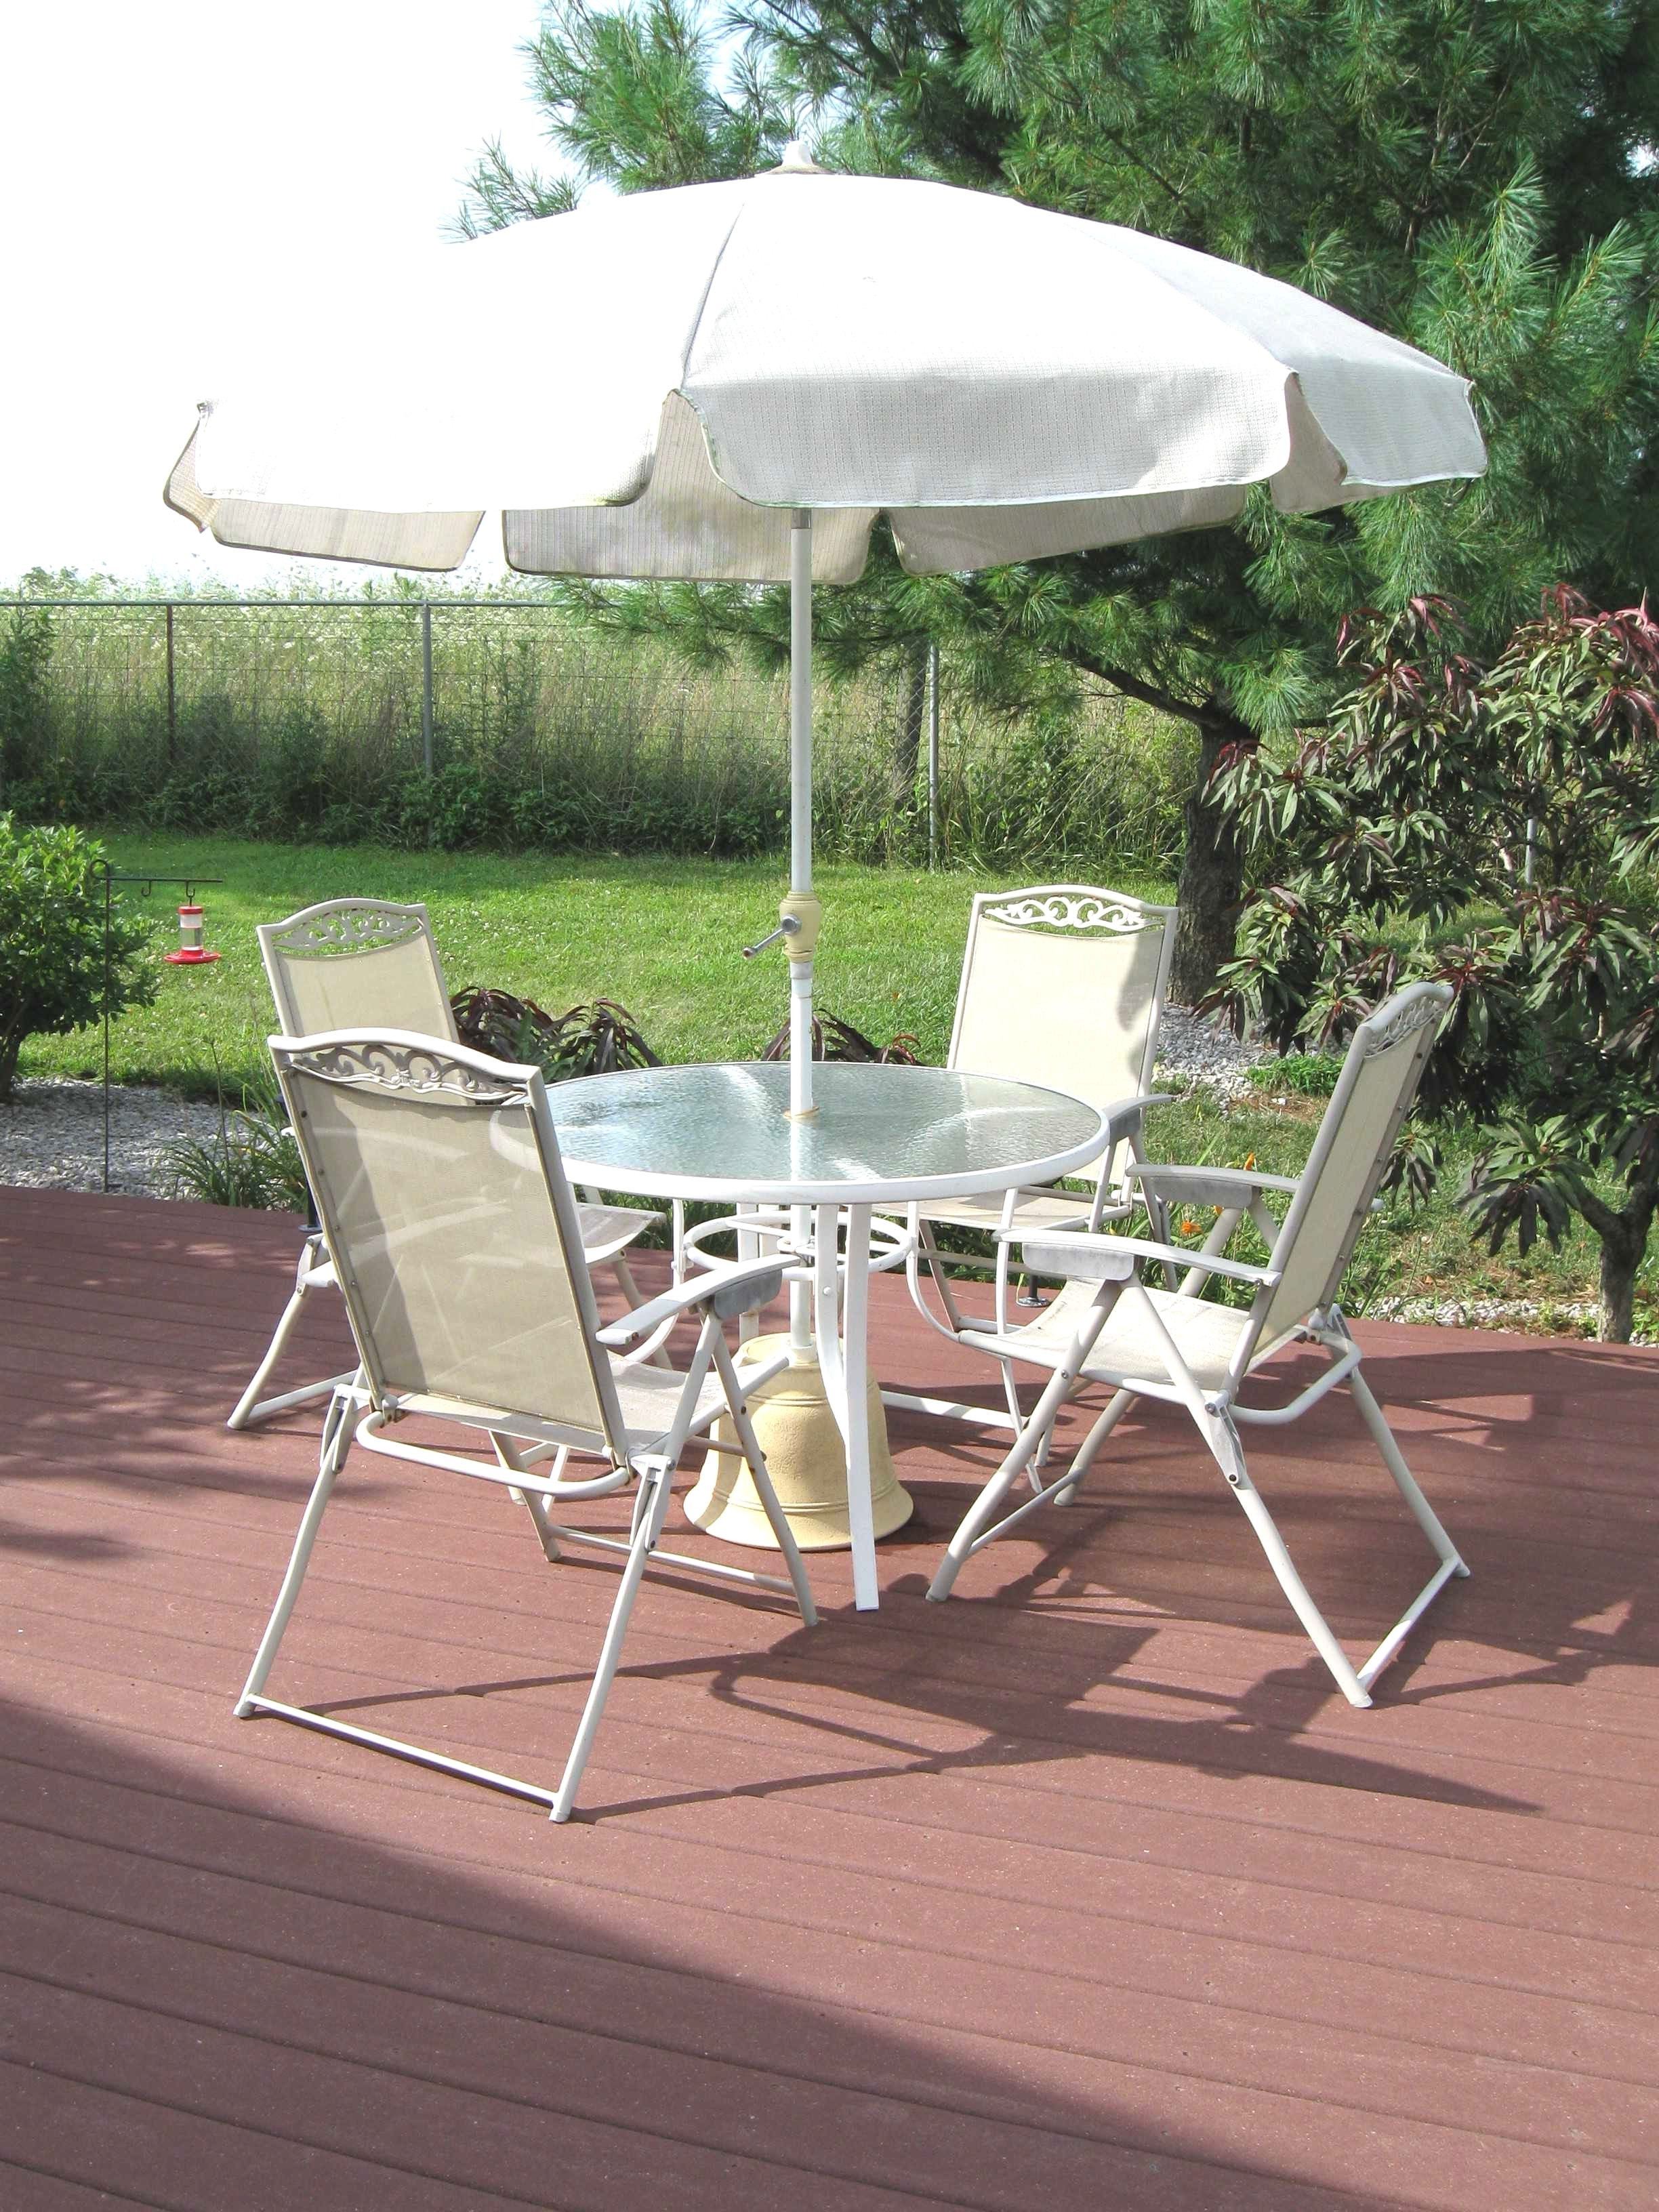 Preferred Black And White Striped Patio Umbrellas With Regard To 30 The Best Black And White Patio Umbrella Concept Onionskeen (View 16 of 20)